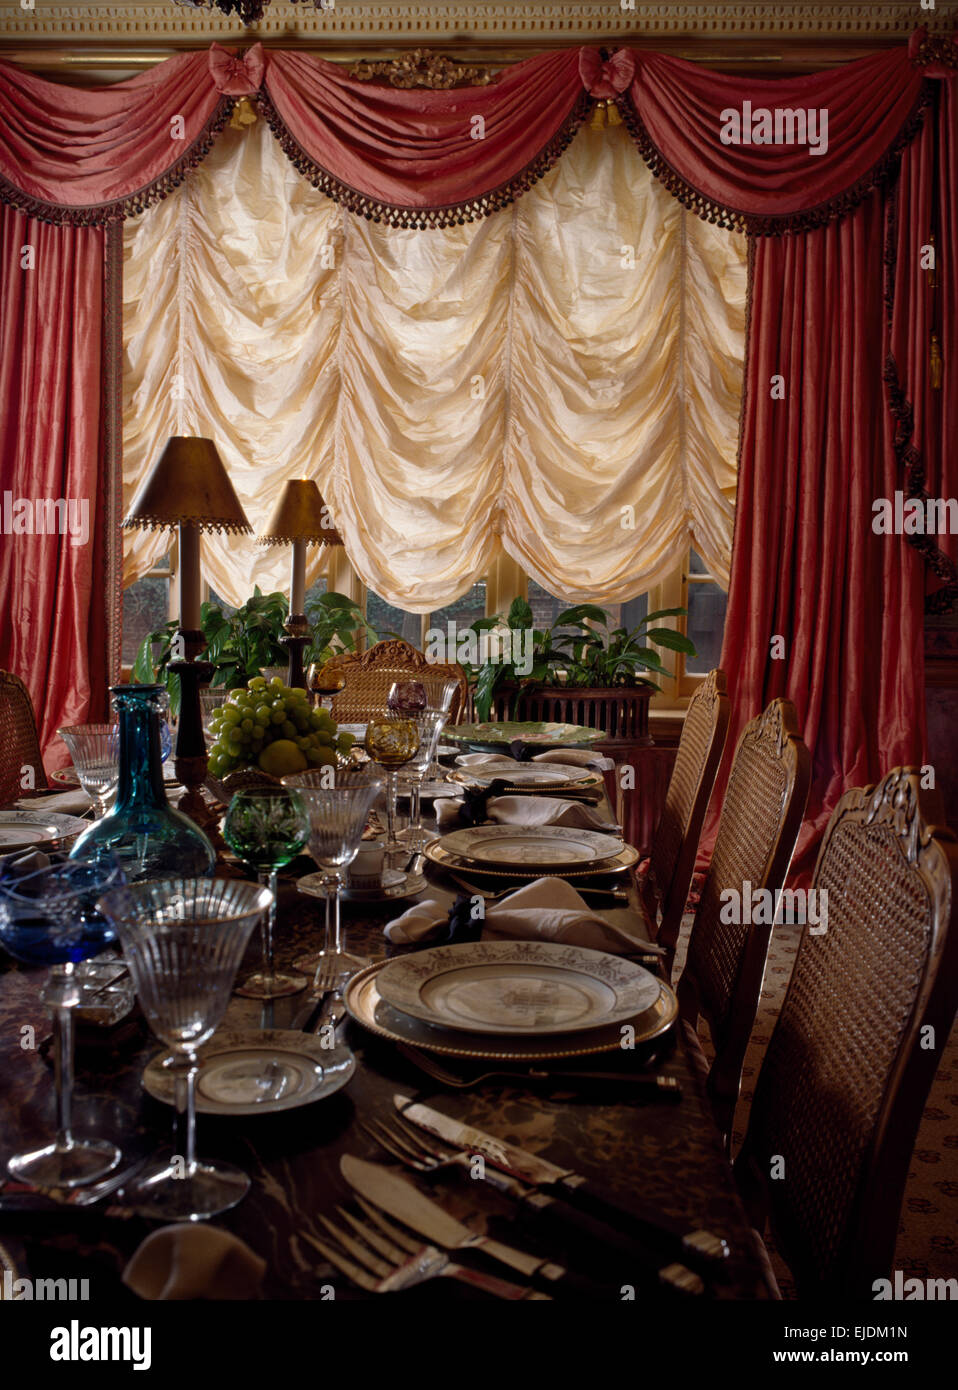 Cream festoon blind and pink swagged curtains in early nineties dining room - Stock Image